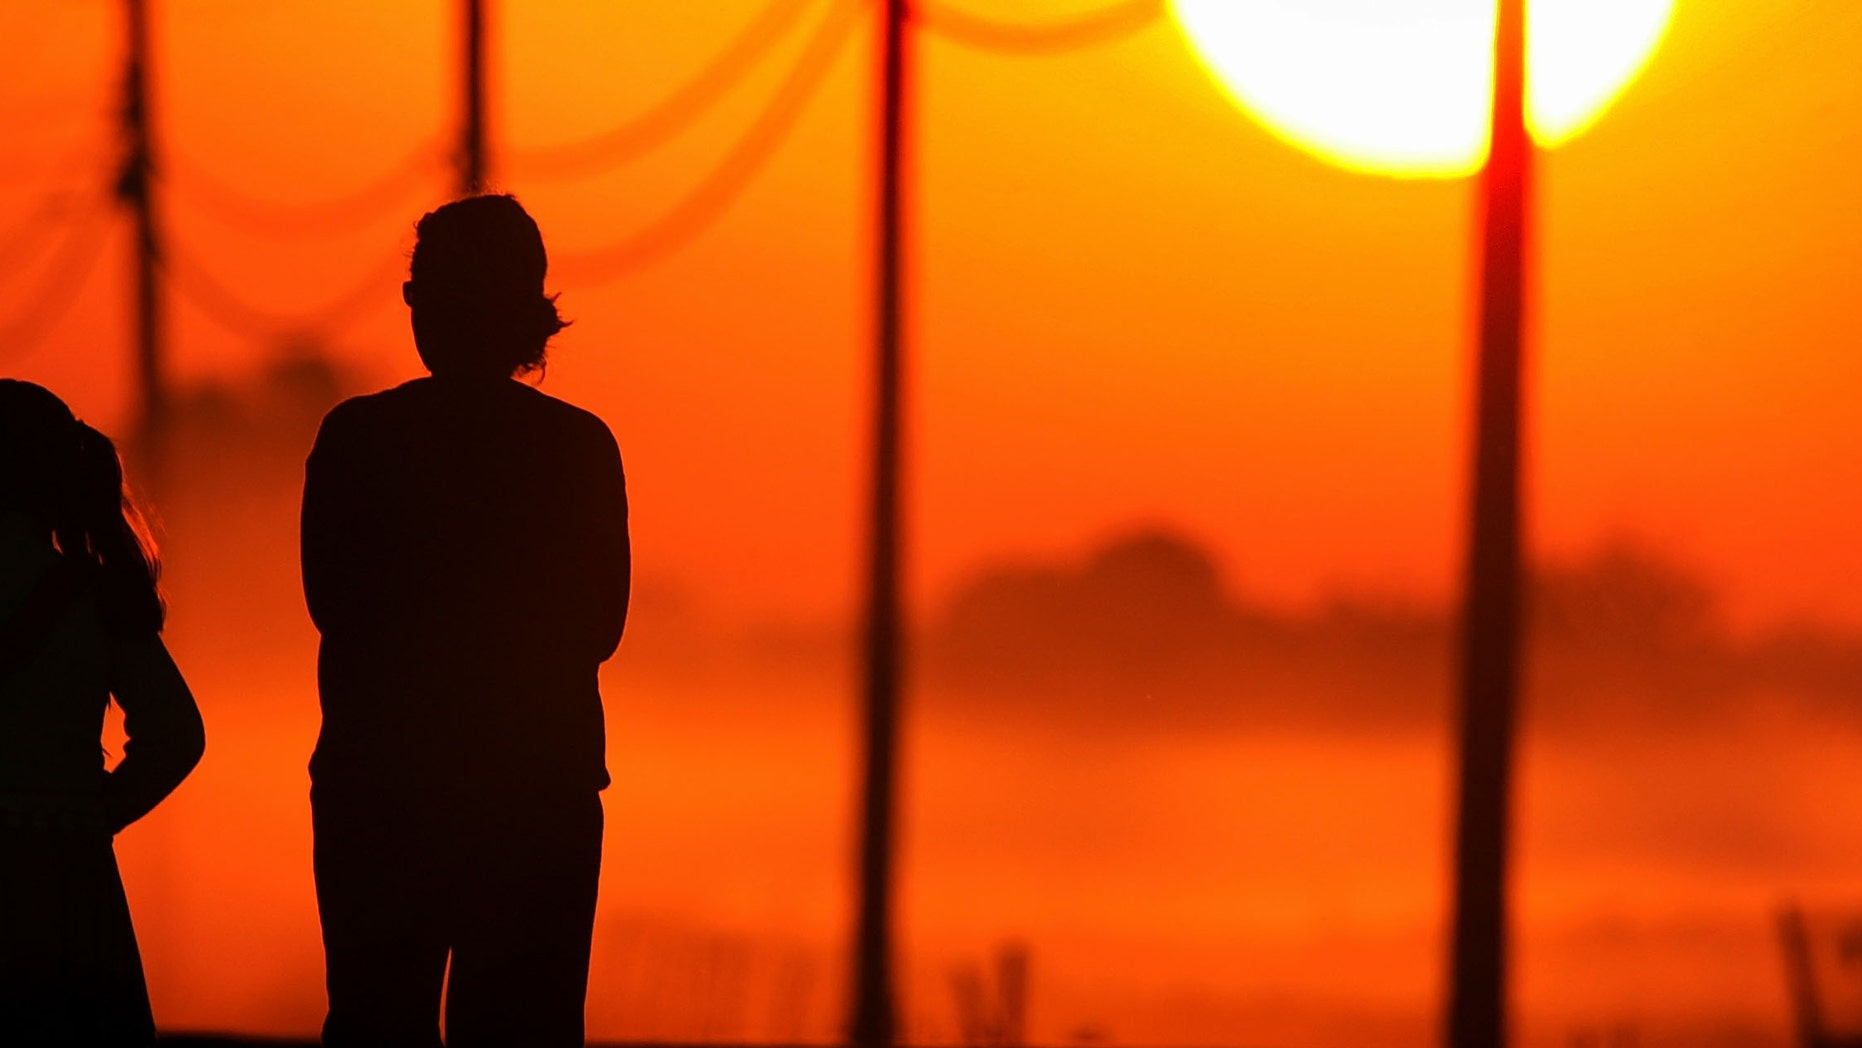 STOCKTON, CA - SEPTEMBER 29:  A young girl walks to her school bus stop at sunrise with another person on Bethel Island, one of the residential islands surrounded by levees that hold back the higher waters of the Sacramento-San Joaquin River Delta on September 29, 2005 west of Stockton, California. Officials say that the dikes of the Sacramento-San Joaquin River Delta are in worse shape than those that broke and flooded New Orleans during Hurricane Katrina. There is a two-in-three chance that a catastrophic earthquake or storm in the next 50 years may damage the levees enough to cause the kind of destruction that engulfed New Orleans, according to experts. Such an event would affect the water supply that serves two-thirds of California and create a nightmare traffic jam on Highway 4, the two-lane road that would be the major evacuation route, if it is not damaged beyond usability. Approximately 1,600 miles of levees protect the delta's islands, which lie well below sea-level, and most were built more than 100 years ago.  (Photo by David McNew/Getty Images)